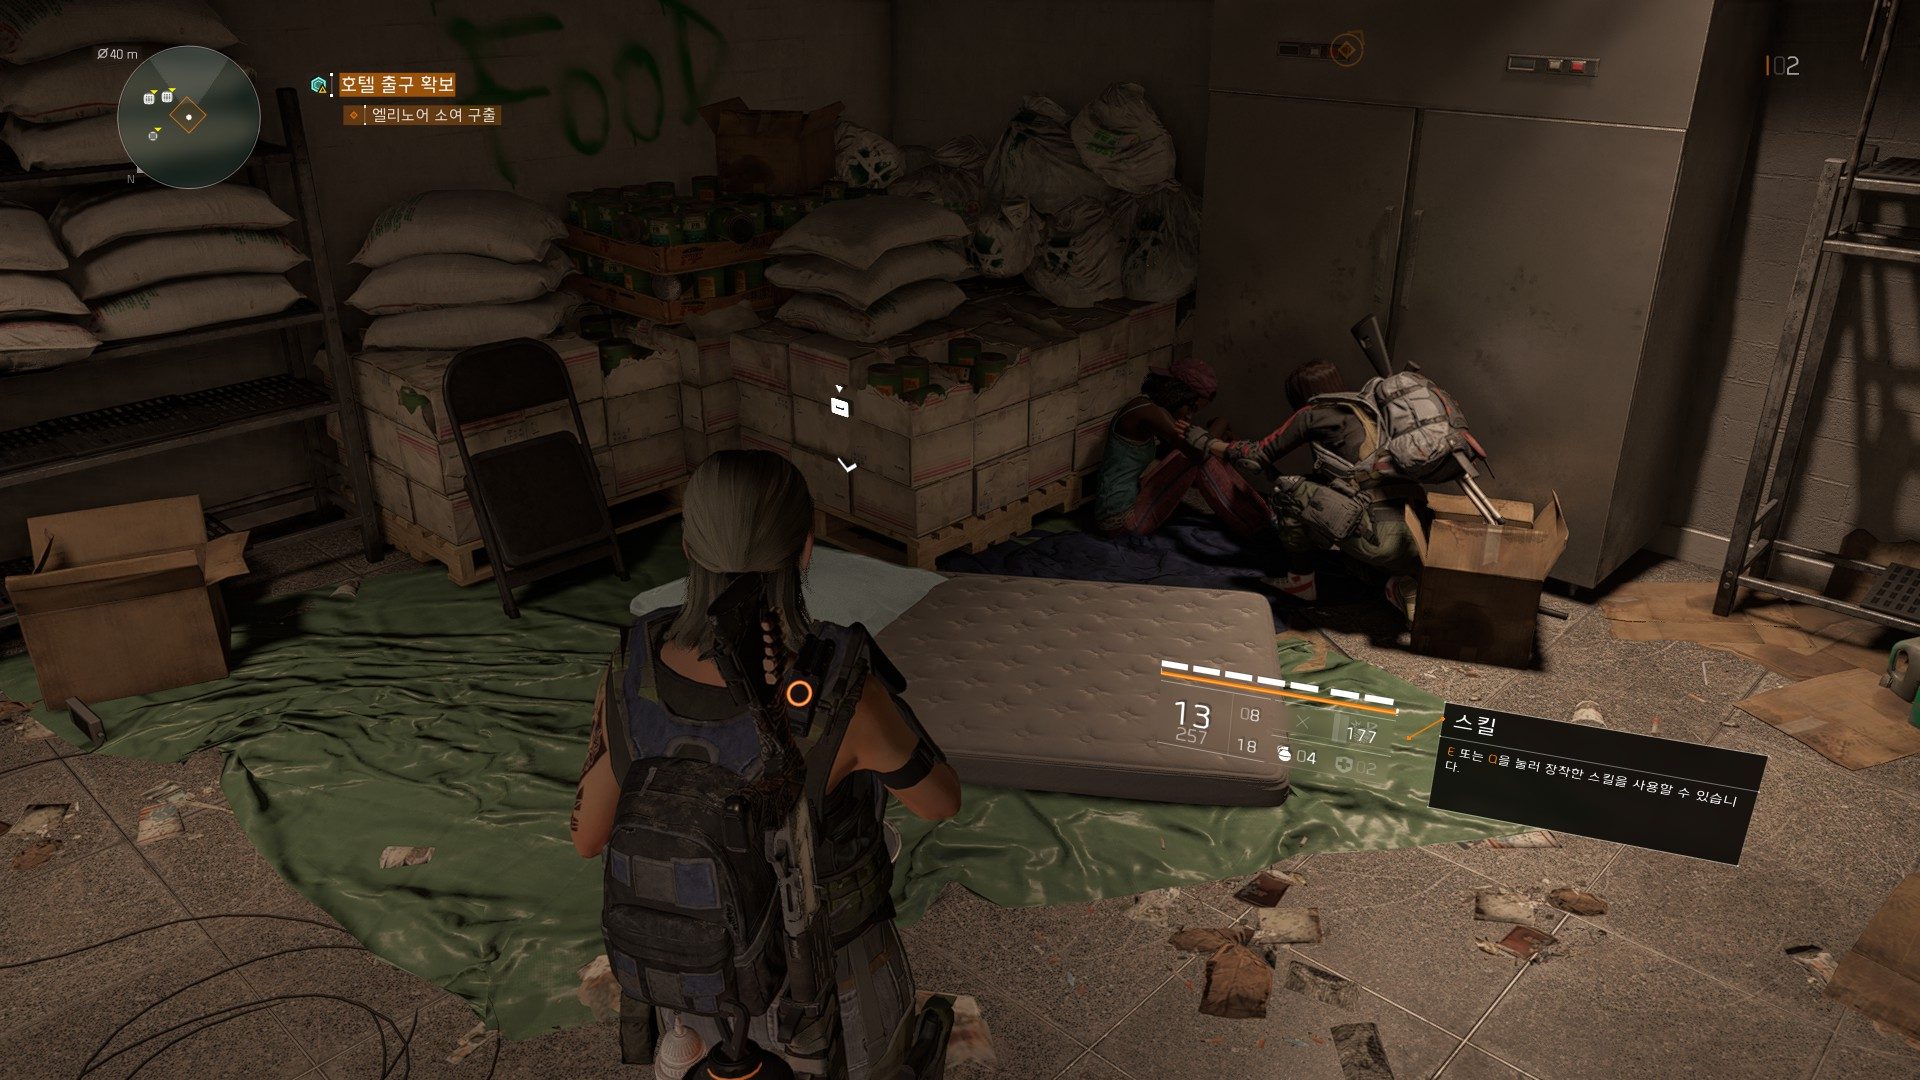 Tom Clancy's The Division® 22019-3-11-23-53-24.jpg